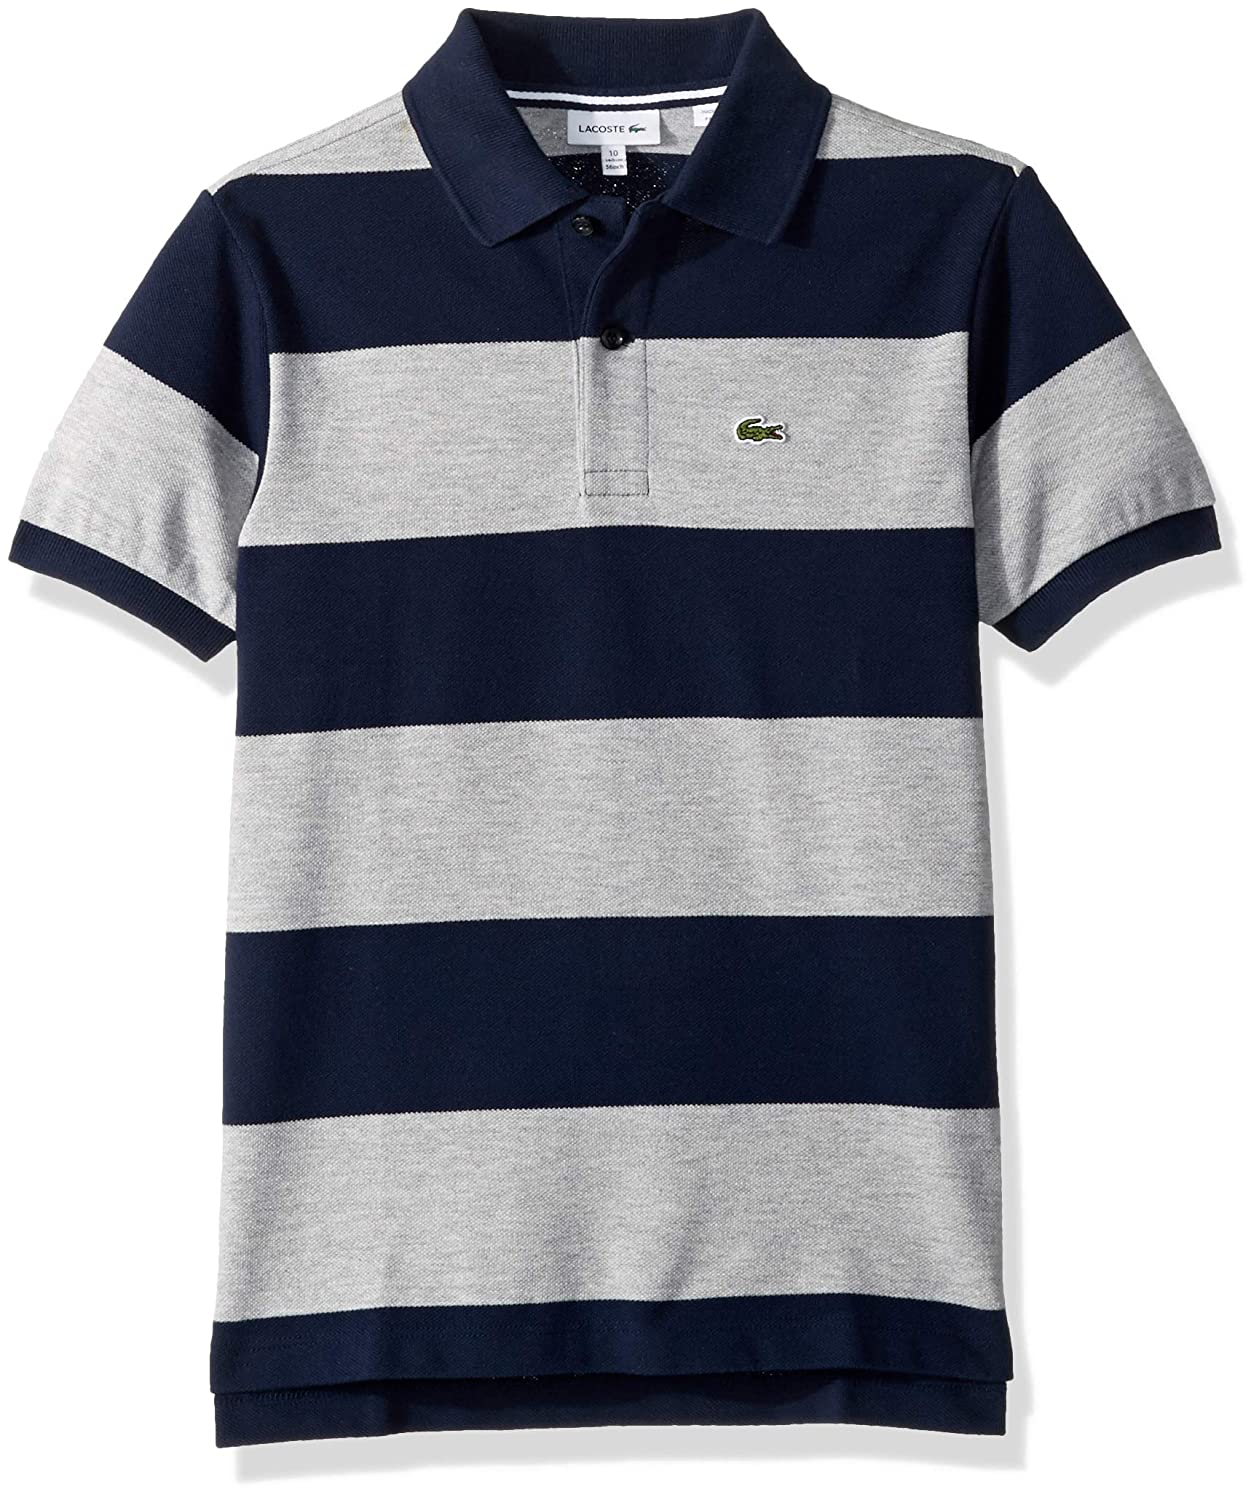 ed8b74c7 Amazon.com: Lacoste Boy Short Sleeve Bicolor Striped Pique Polo: Clothing